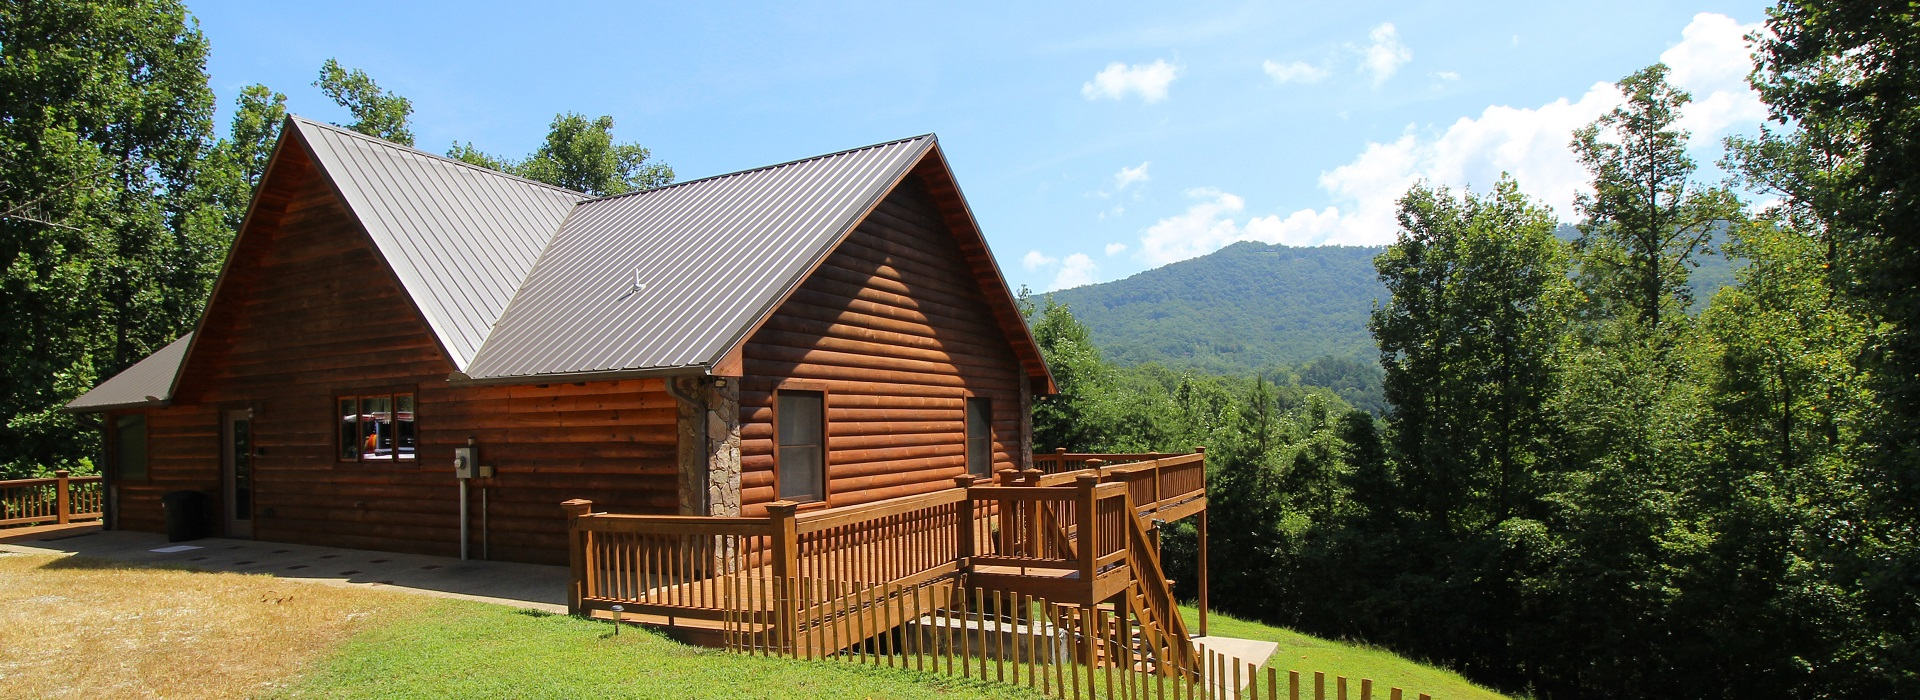 Bryson City Cabin Rentals North Carolina Vacation Rentals